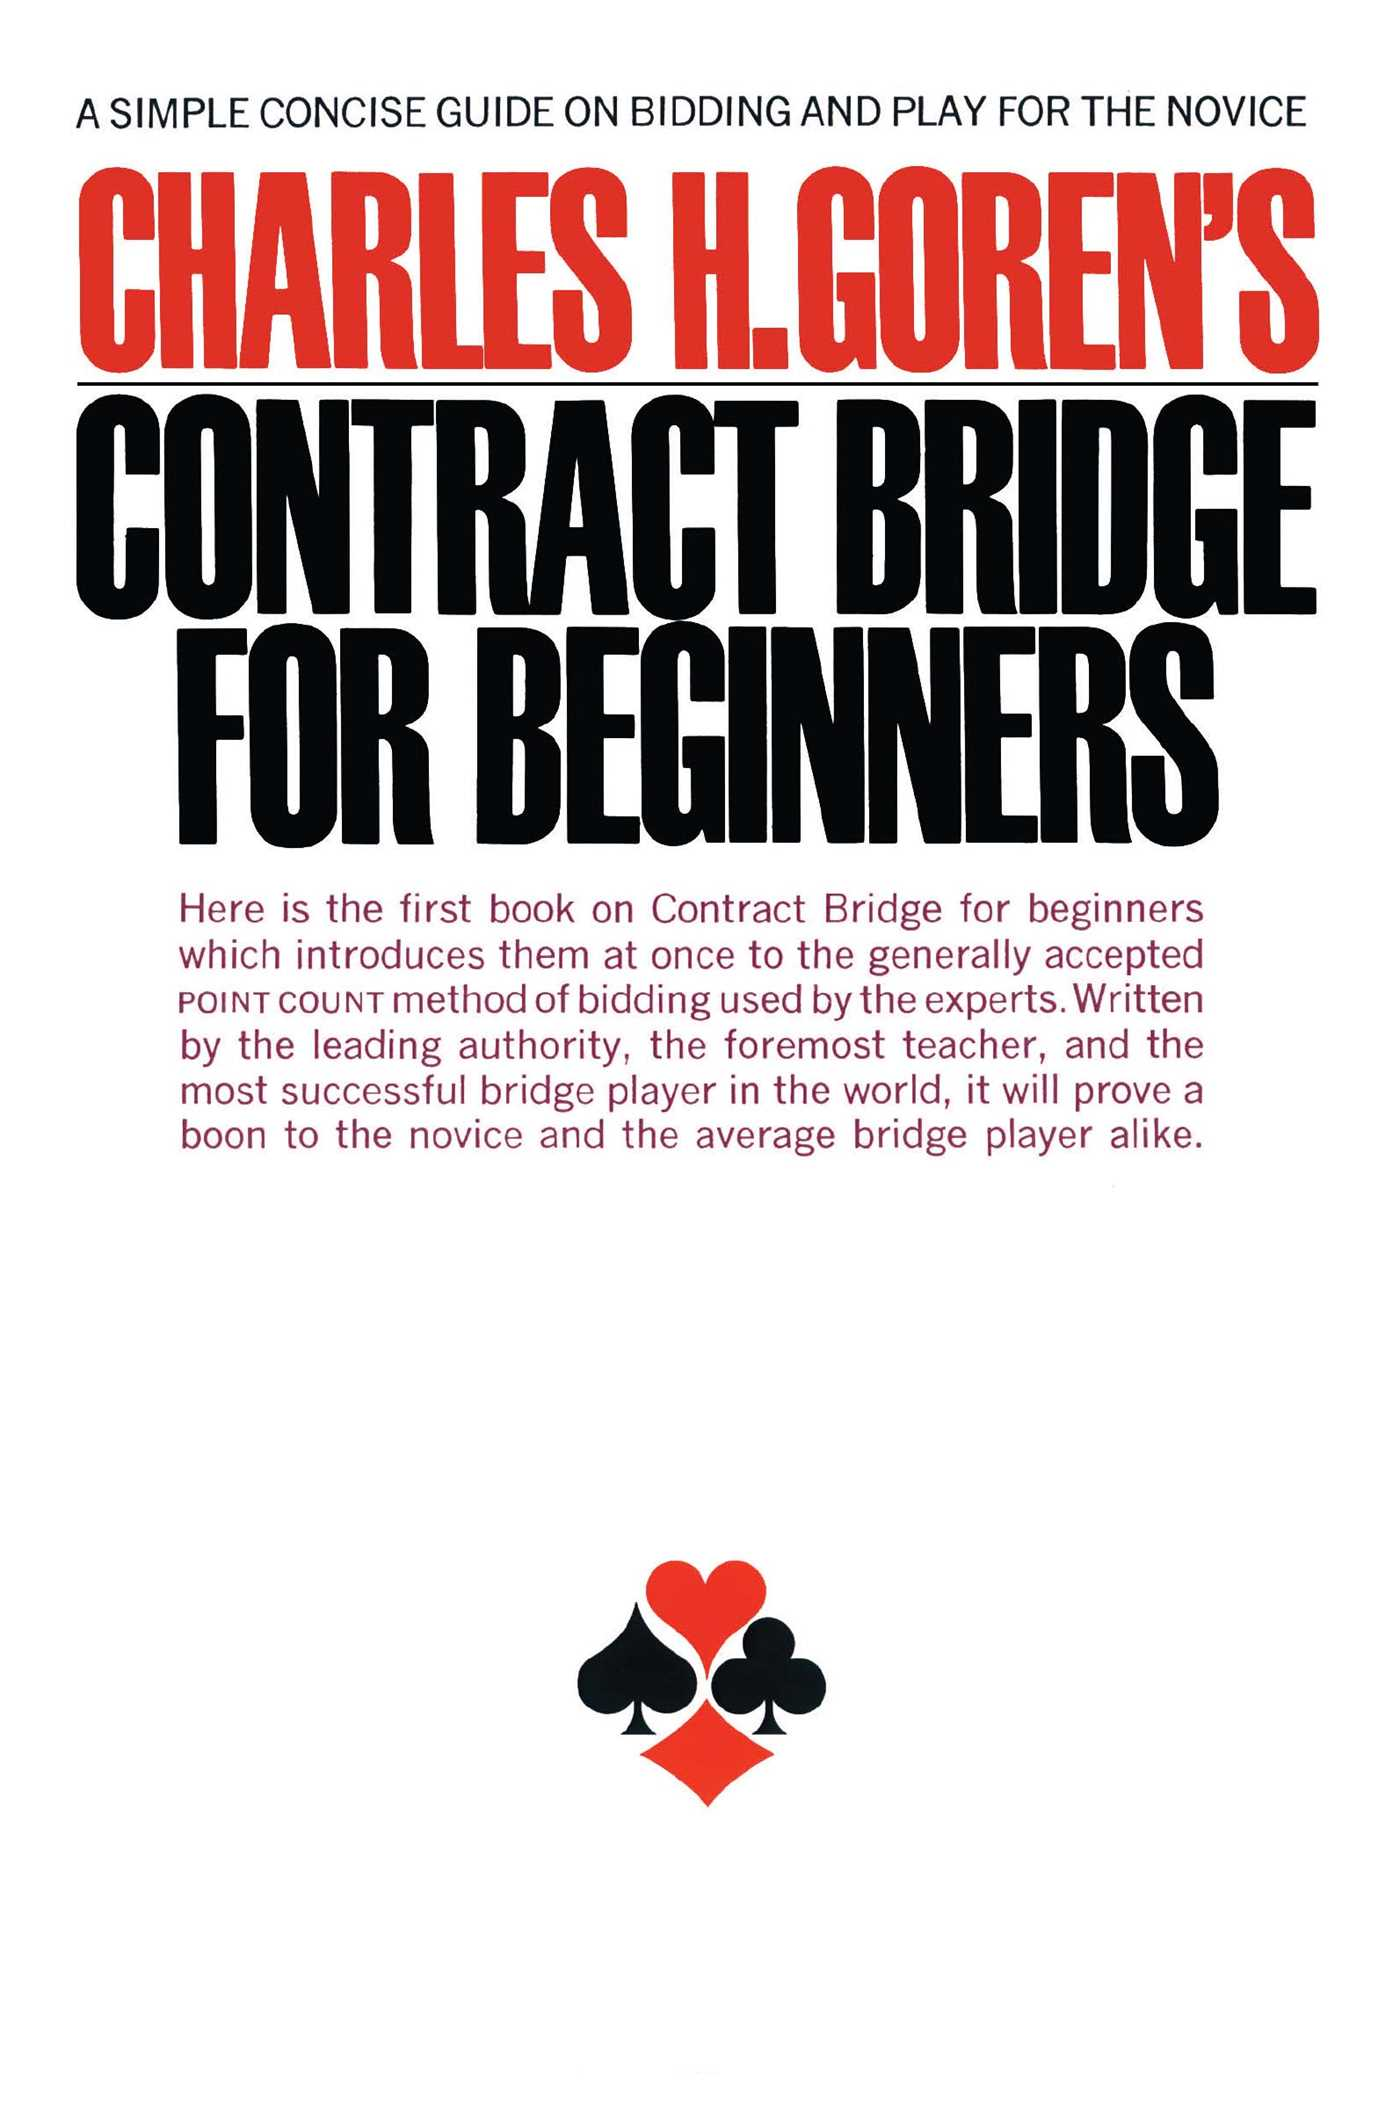 Contract bridge for beginners 9780671210526 hr